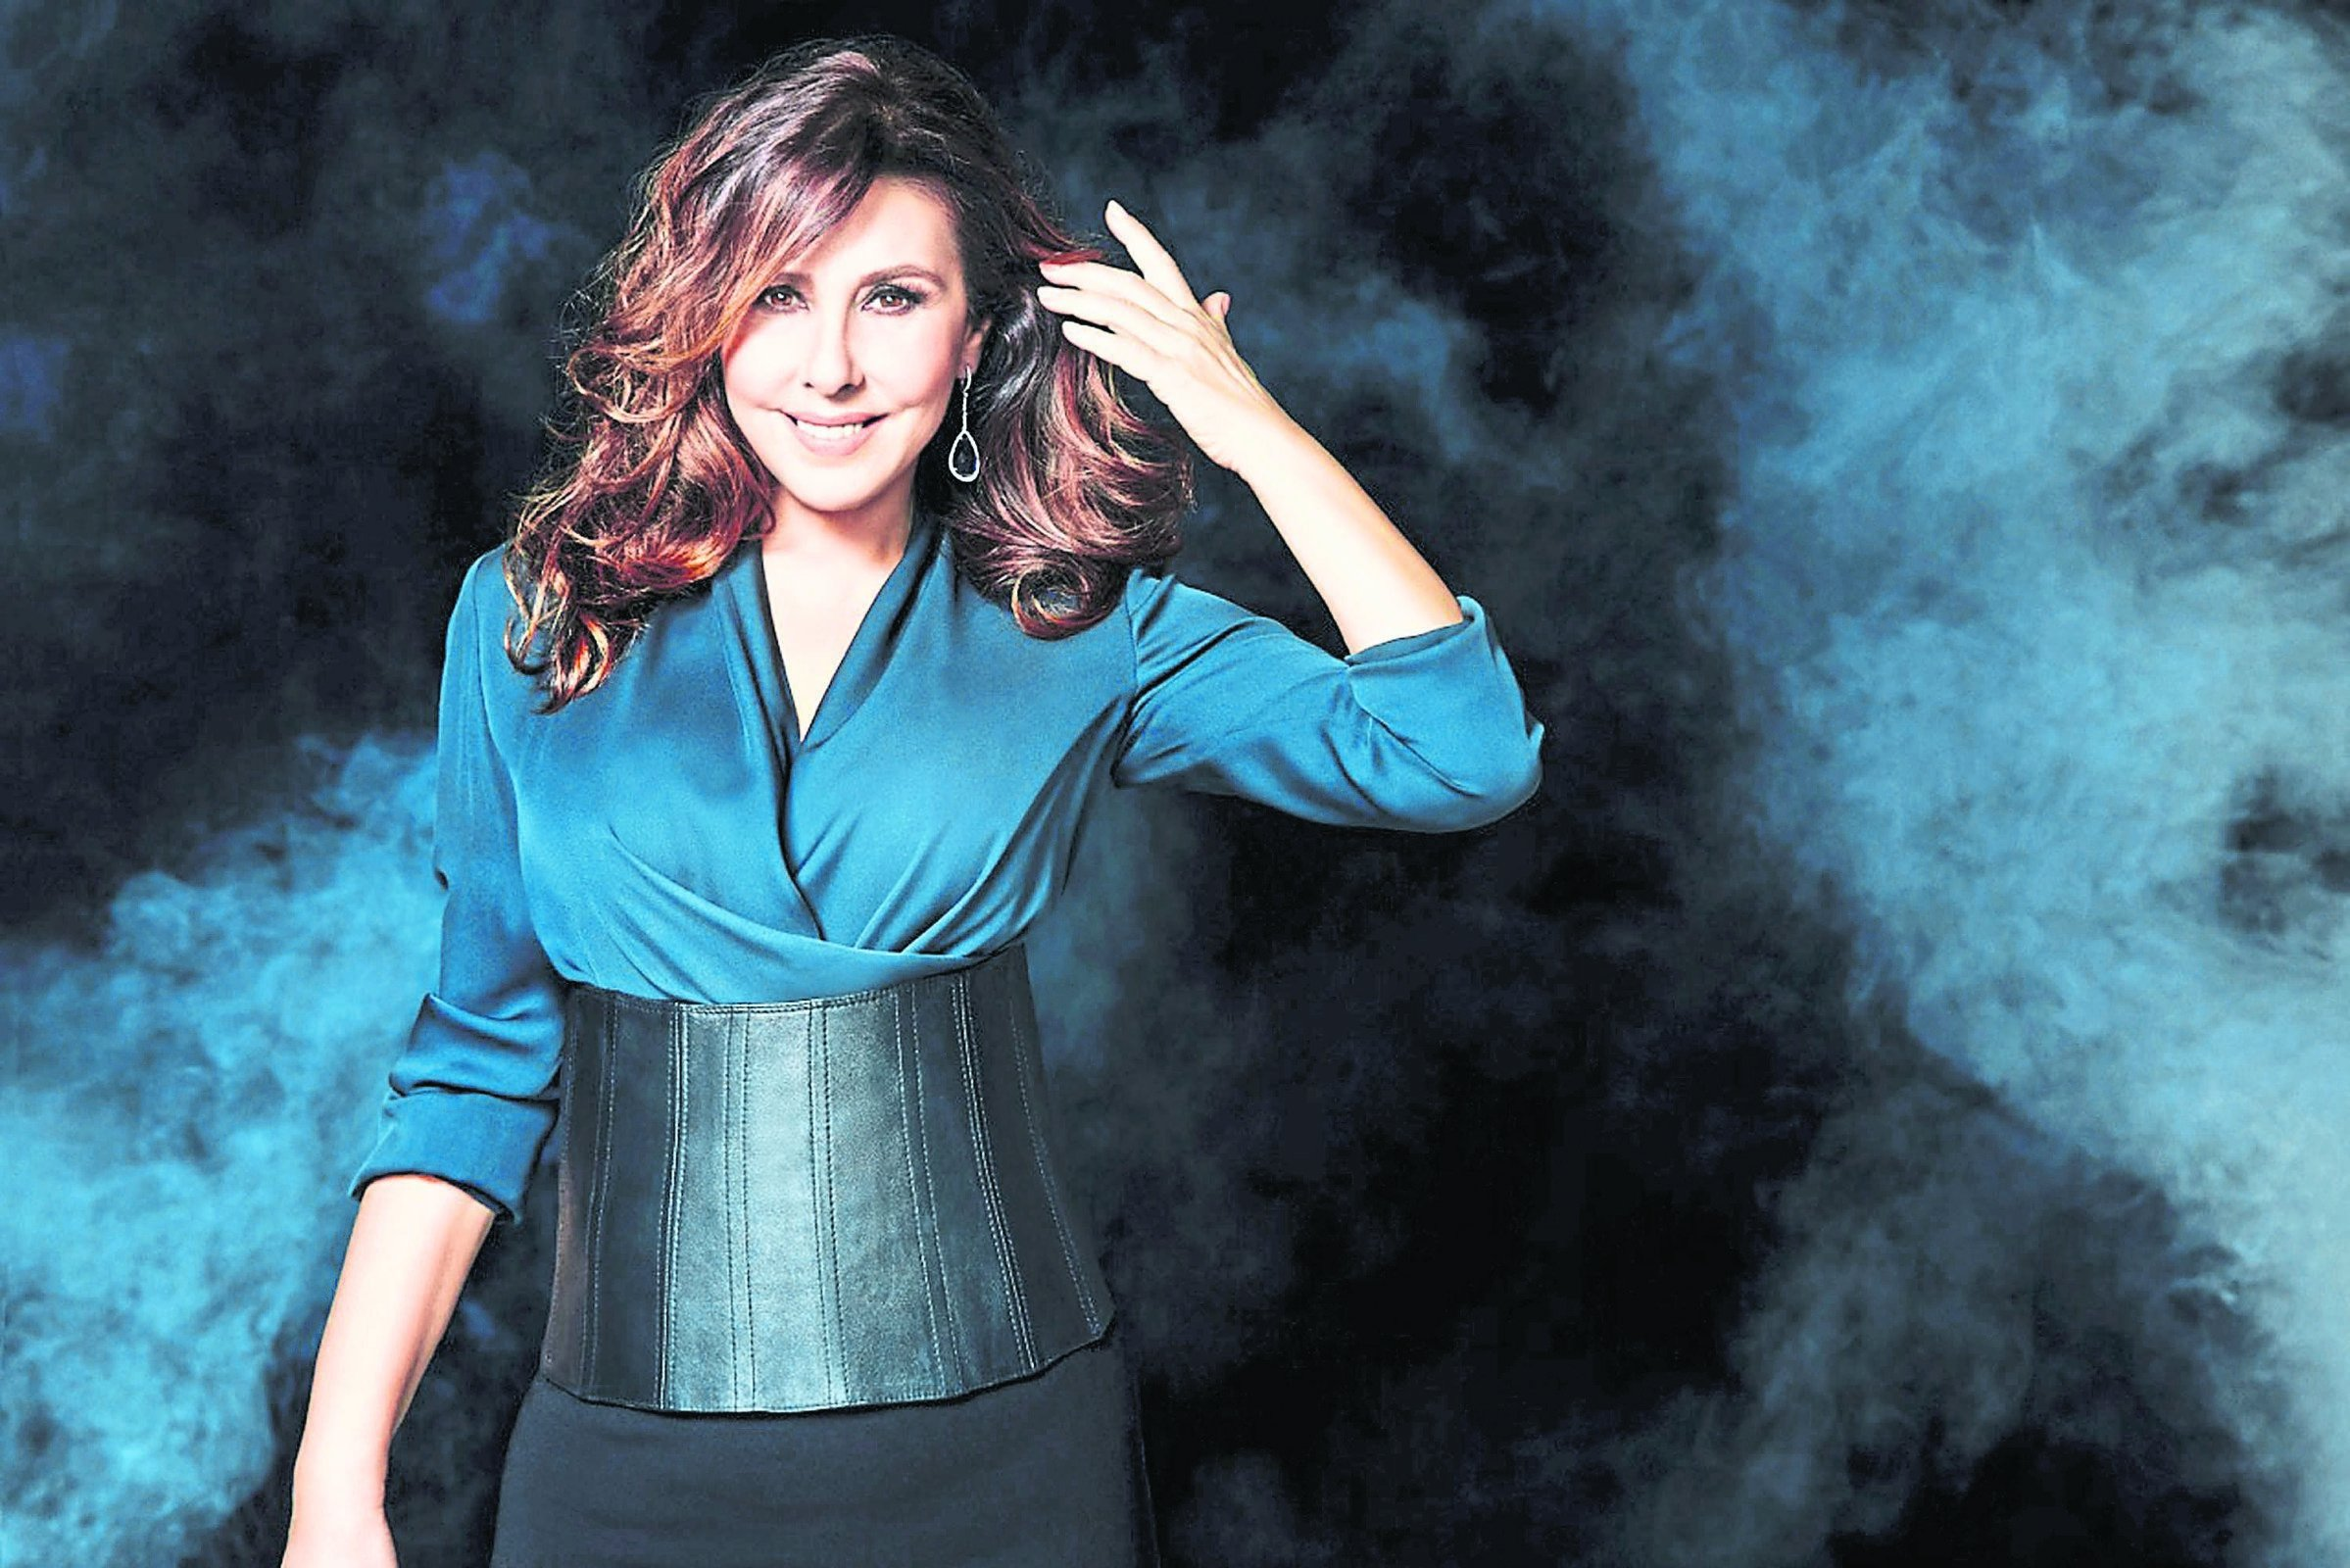 Nilüfer Yumlu, simply known as Nilüfer by her fans, is one of the few singers awarded the honorary title of State Artist in Turkey.  (File Photo)